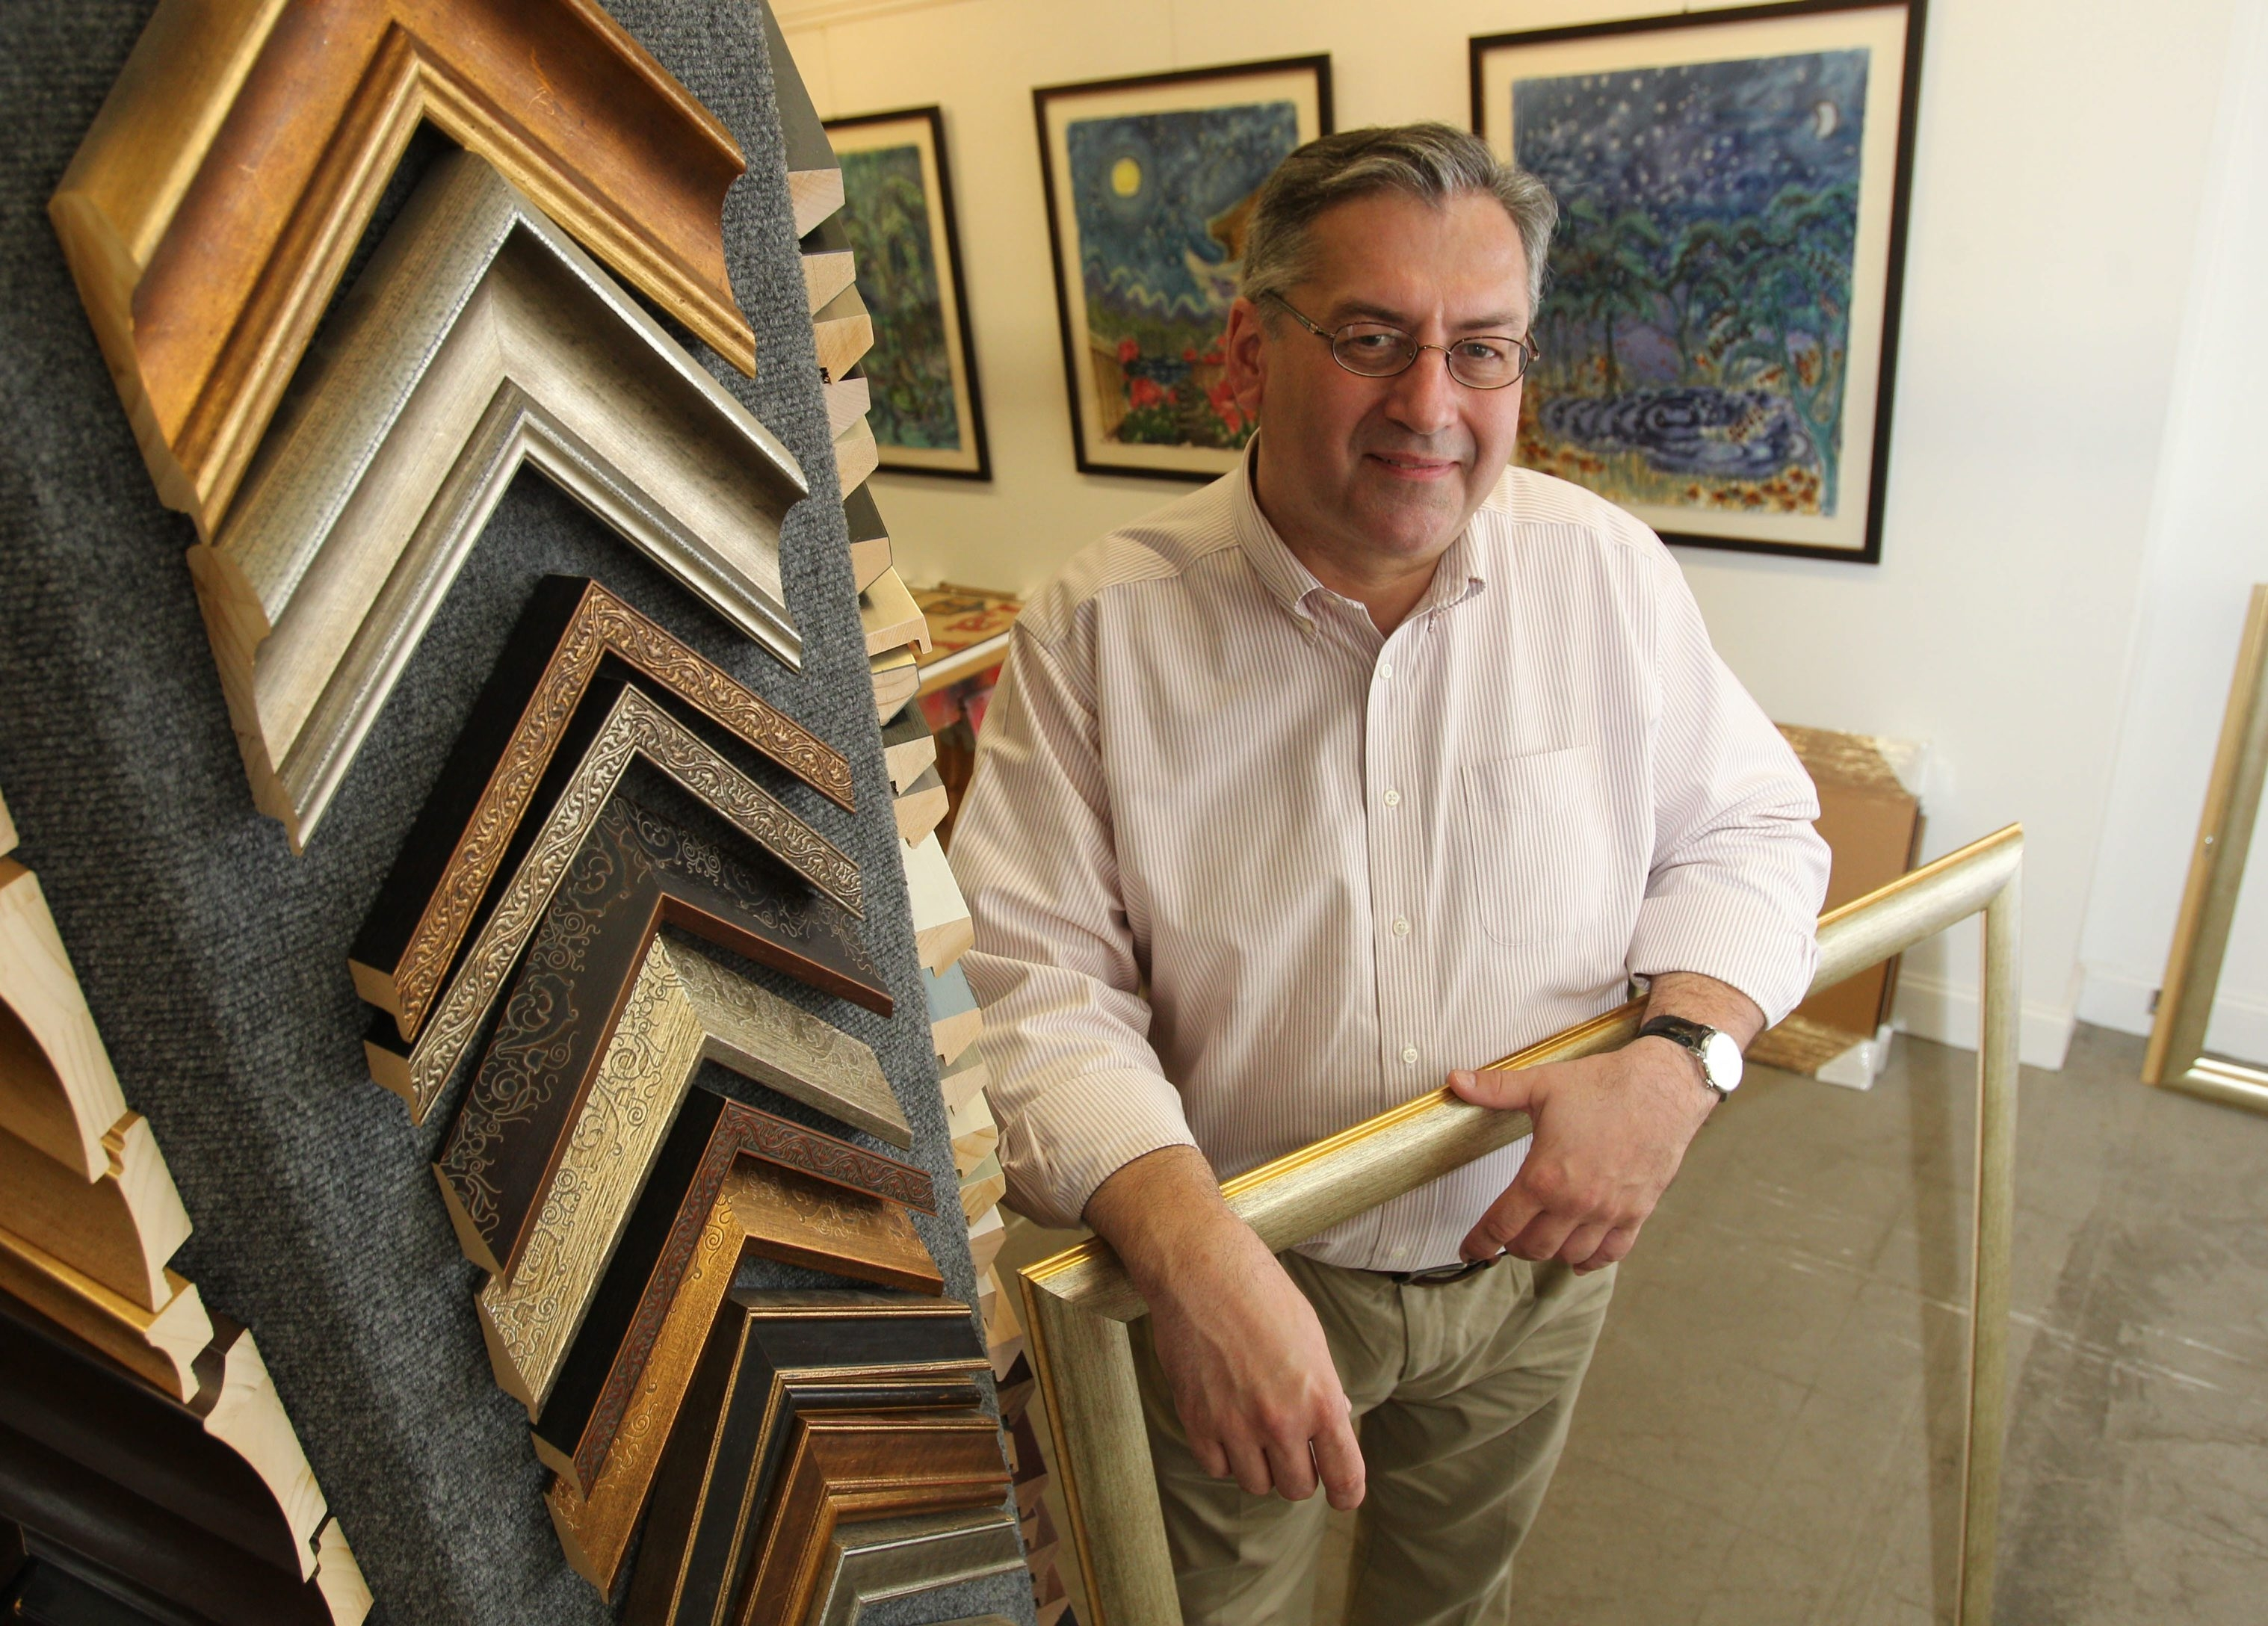 'I've spent a lot of time reading, touring museums, helping people who collect privately to build their collections. The framing is most successful when you establish a relationship.'- Dennis Wisniewski